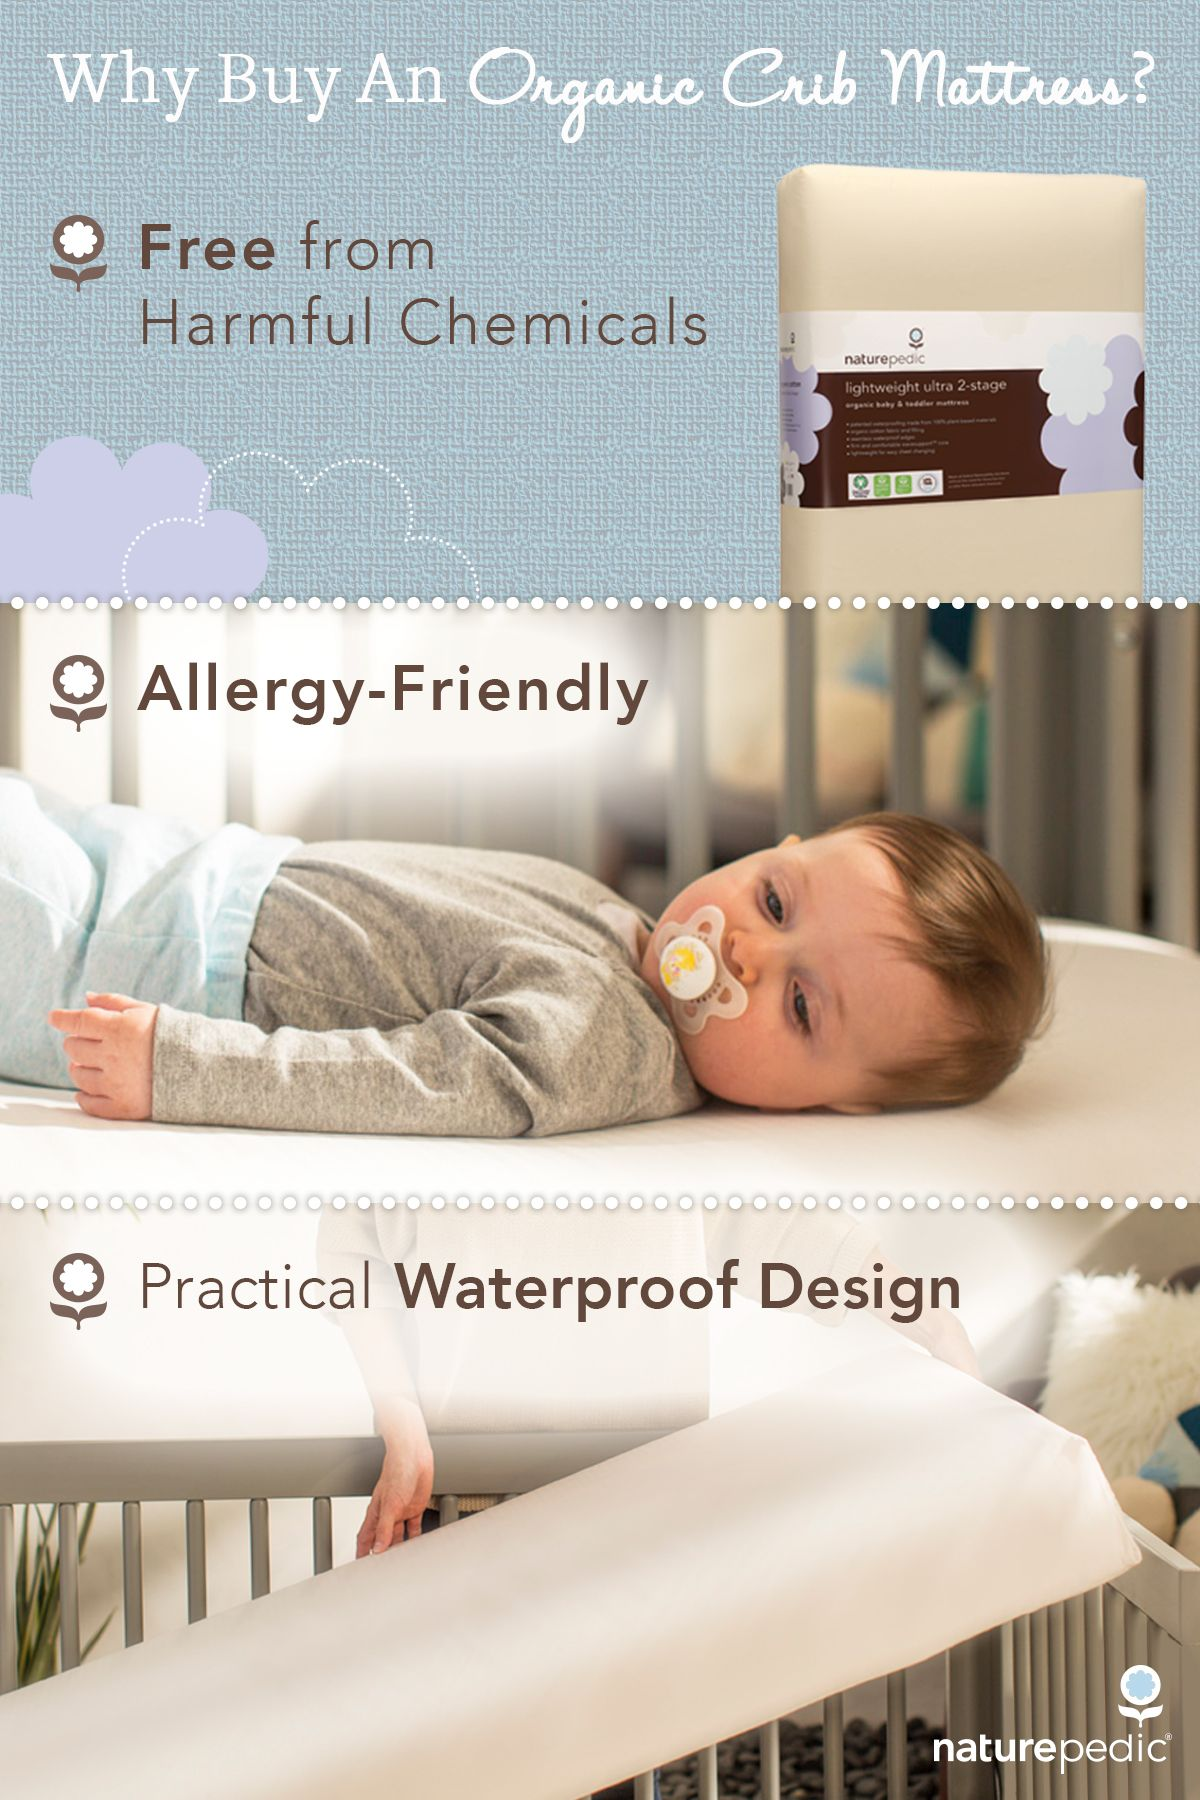 Naturepedic Organic Crib Mattresses Eliminate Hazardous Chemicals Found In Conventional Mattresses Offerin Baby Crib Mattress Baby Cribs Organic Crib Mattress